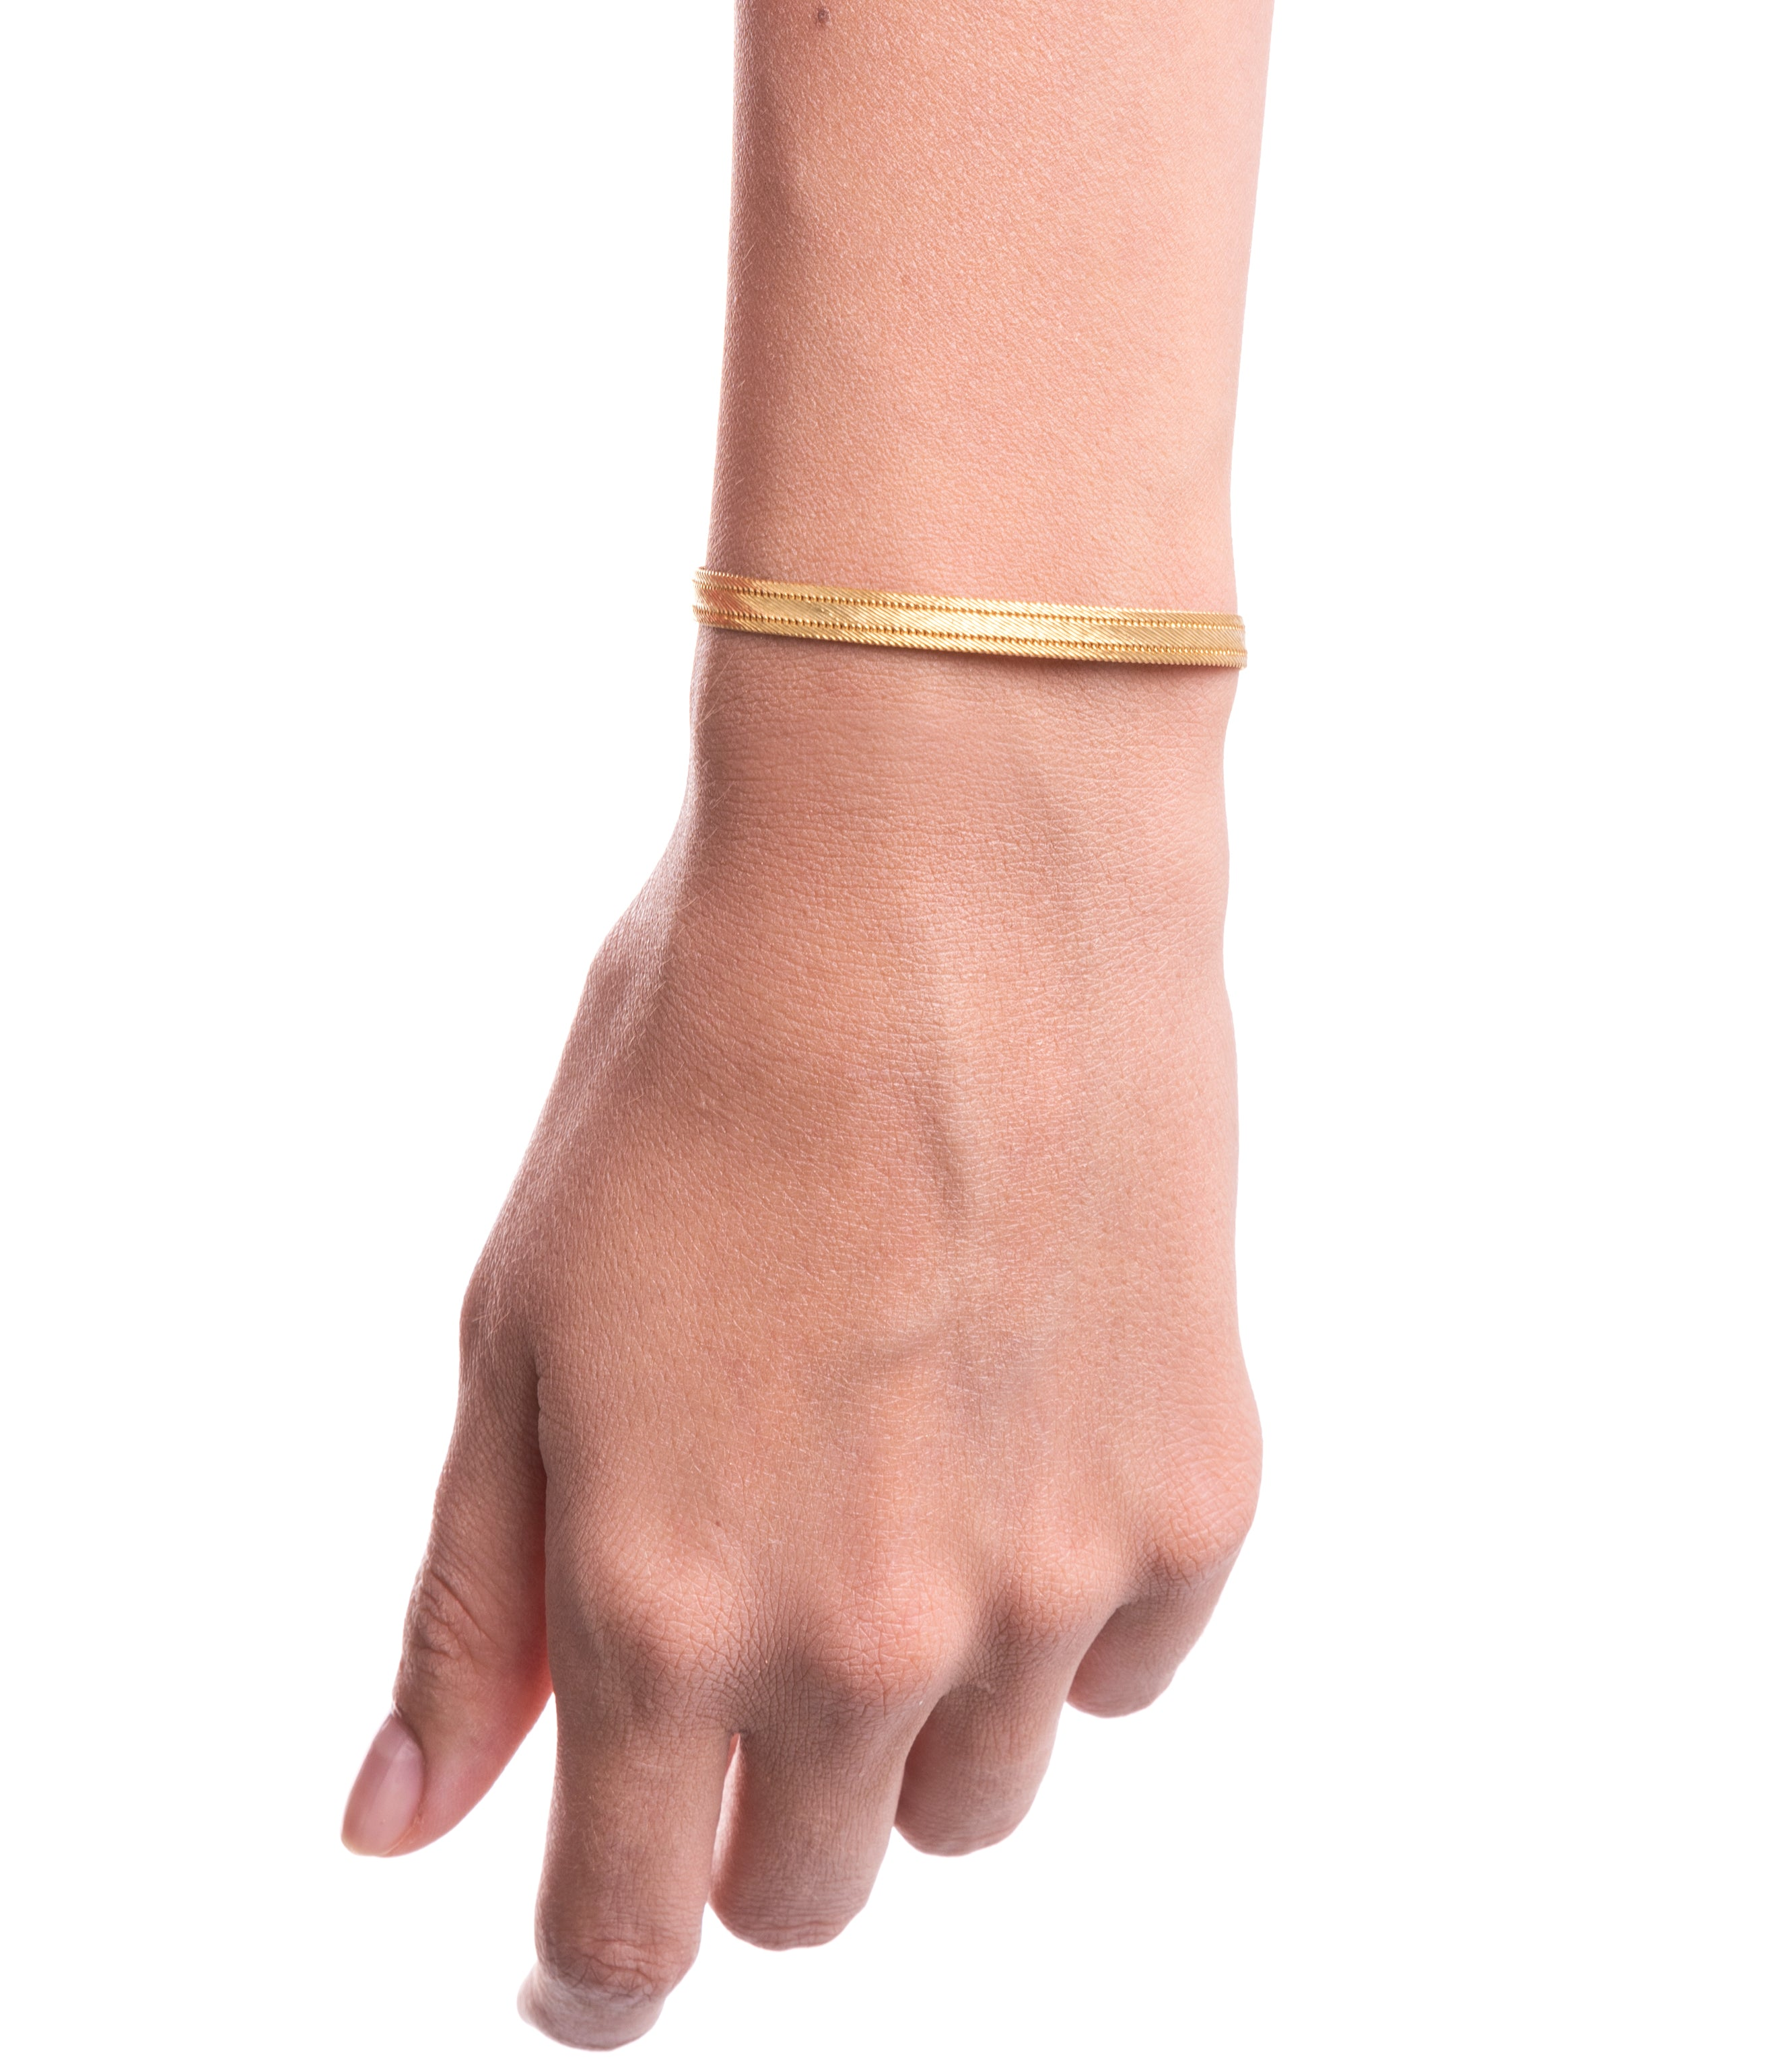 Pontic Bracelet - Gold-plated